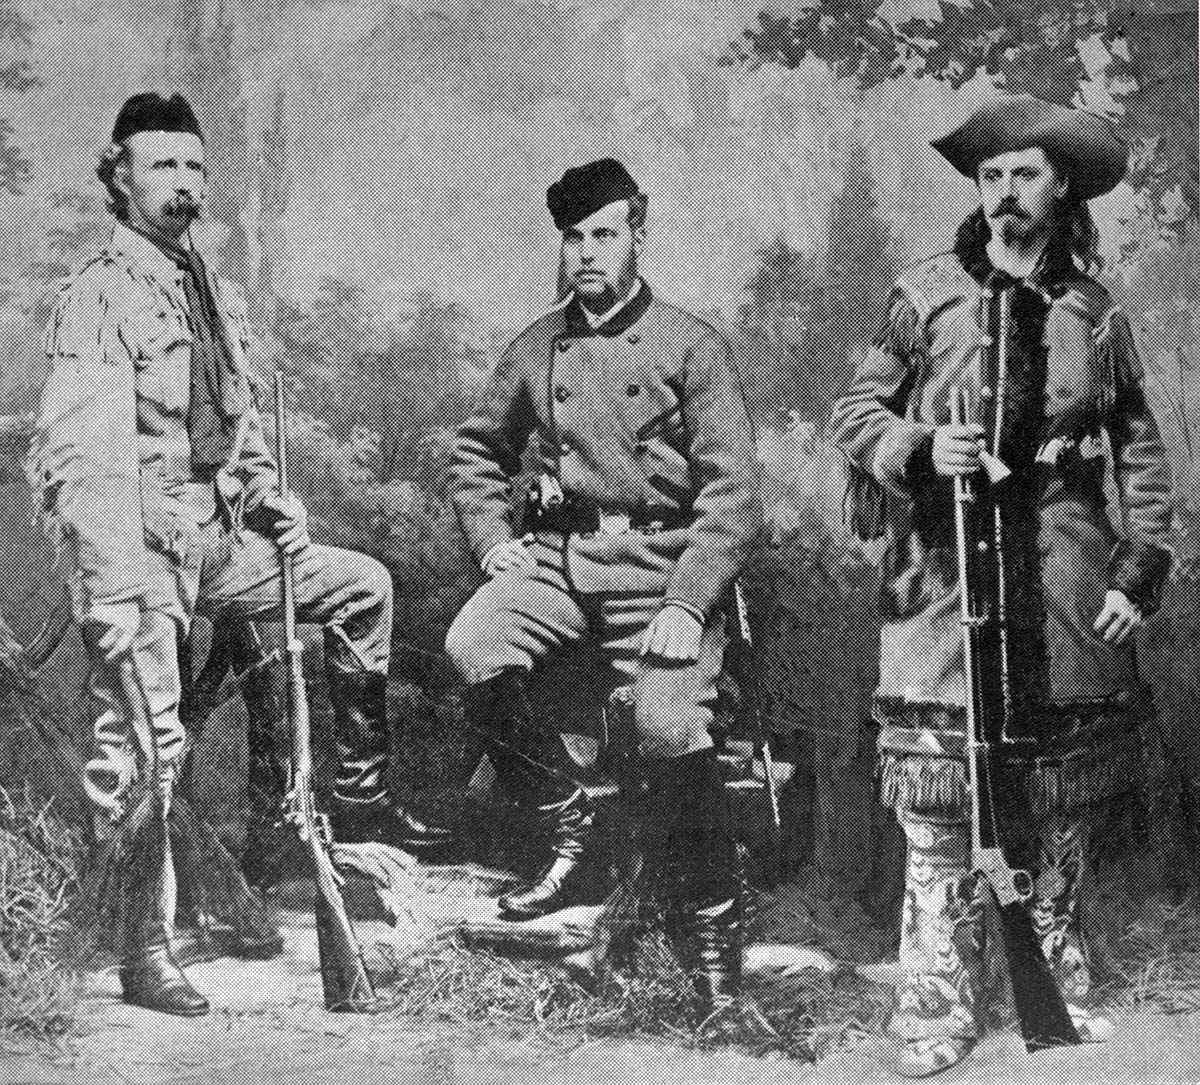 """Lt. Colonel George Armstrong Custer, Russia's Grand Duke Alexis, and William F. """"Buffalo Bill"""" Cody. Black and white photograph, 1872. MS 6 William F. Cody Collection. P.69.819"""